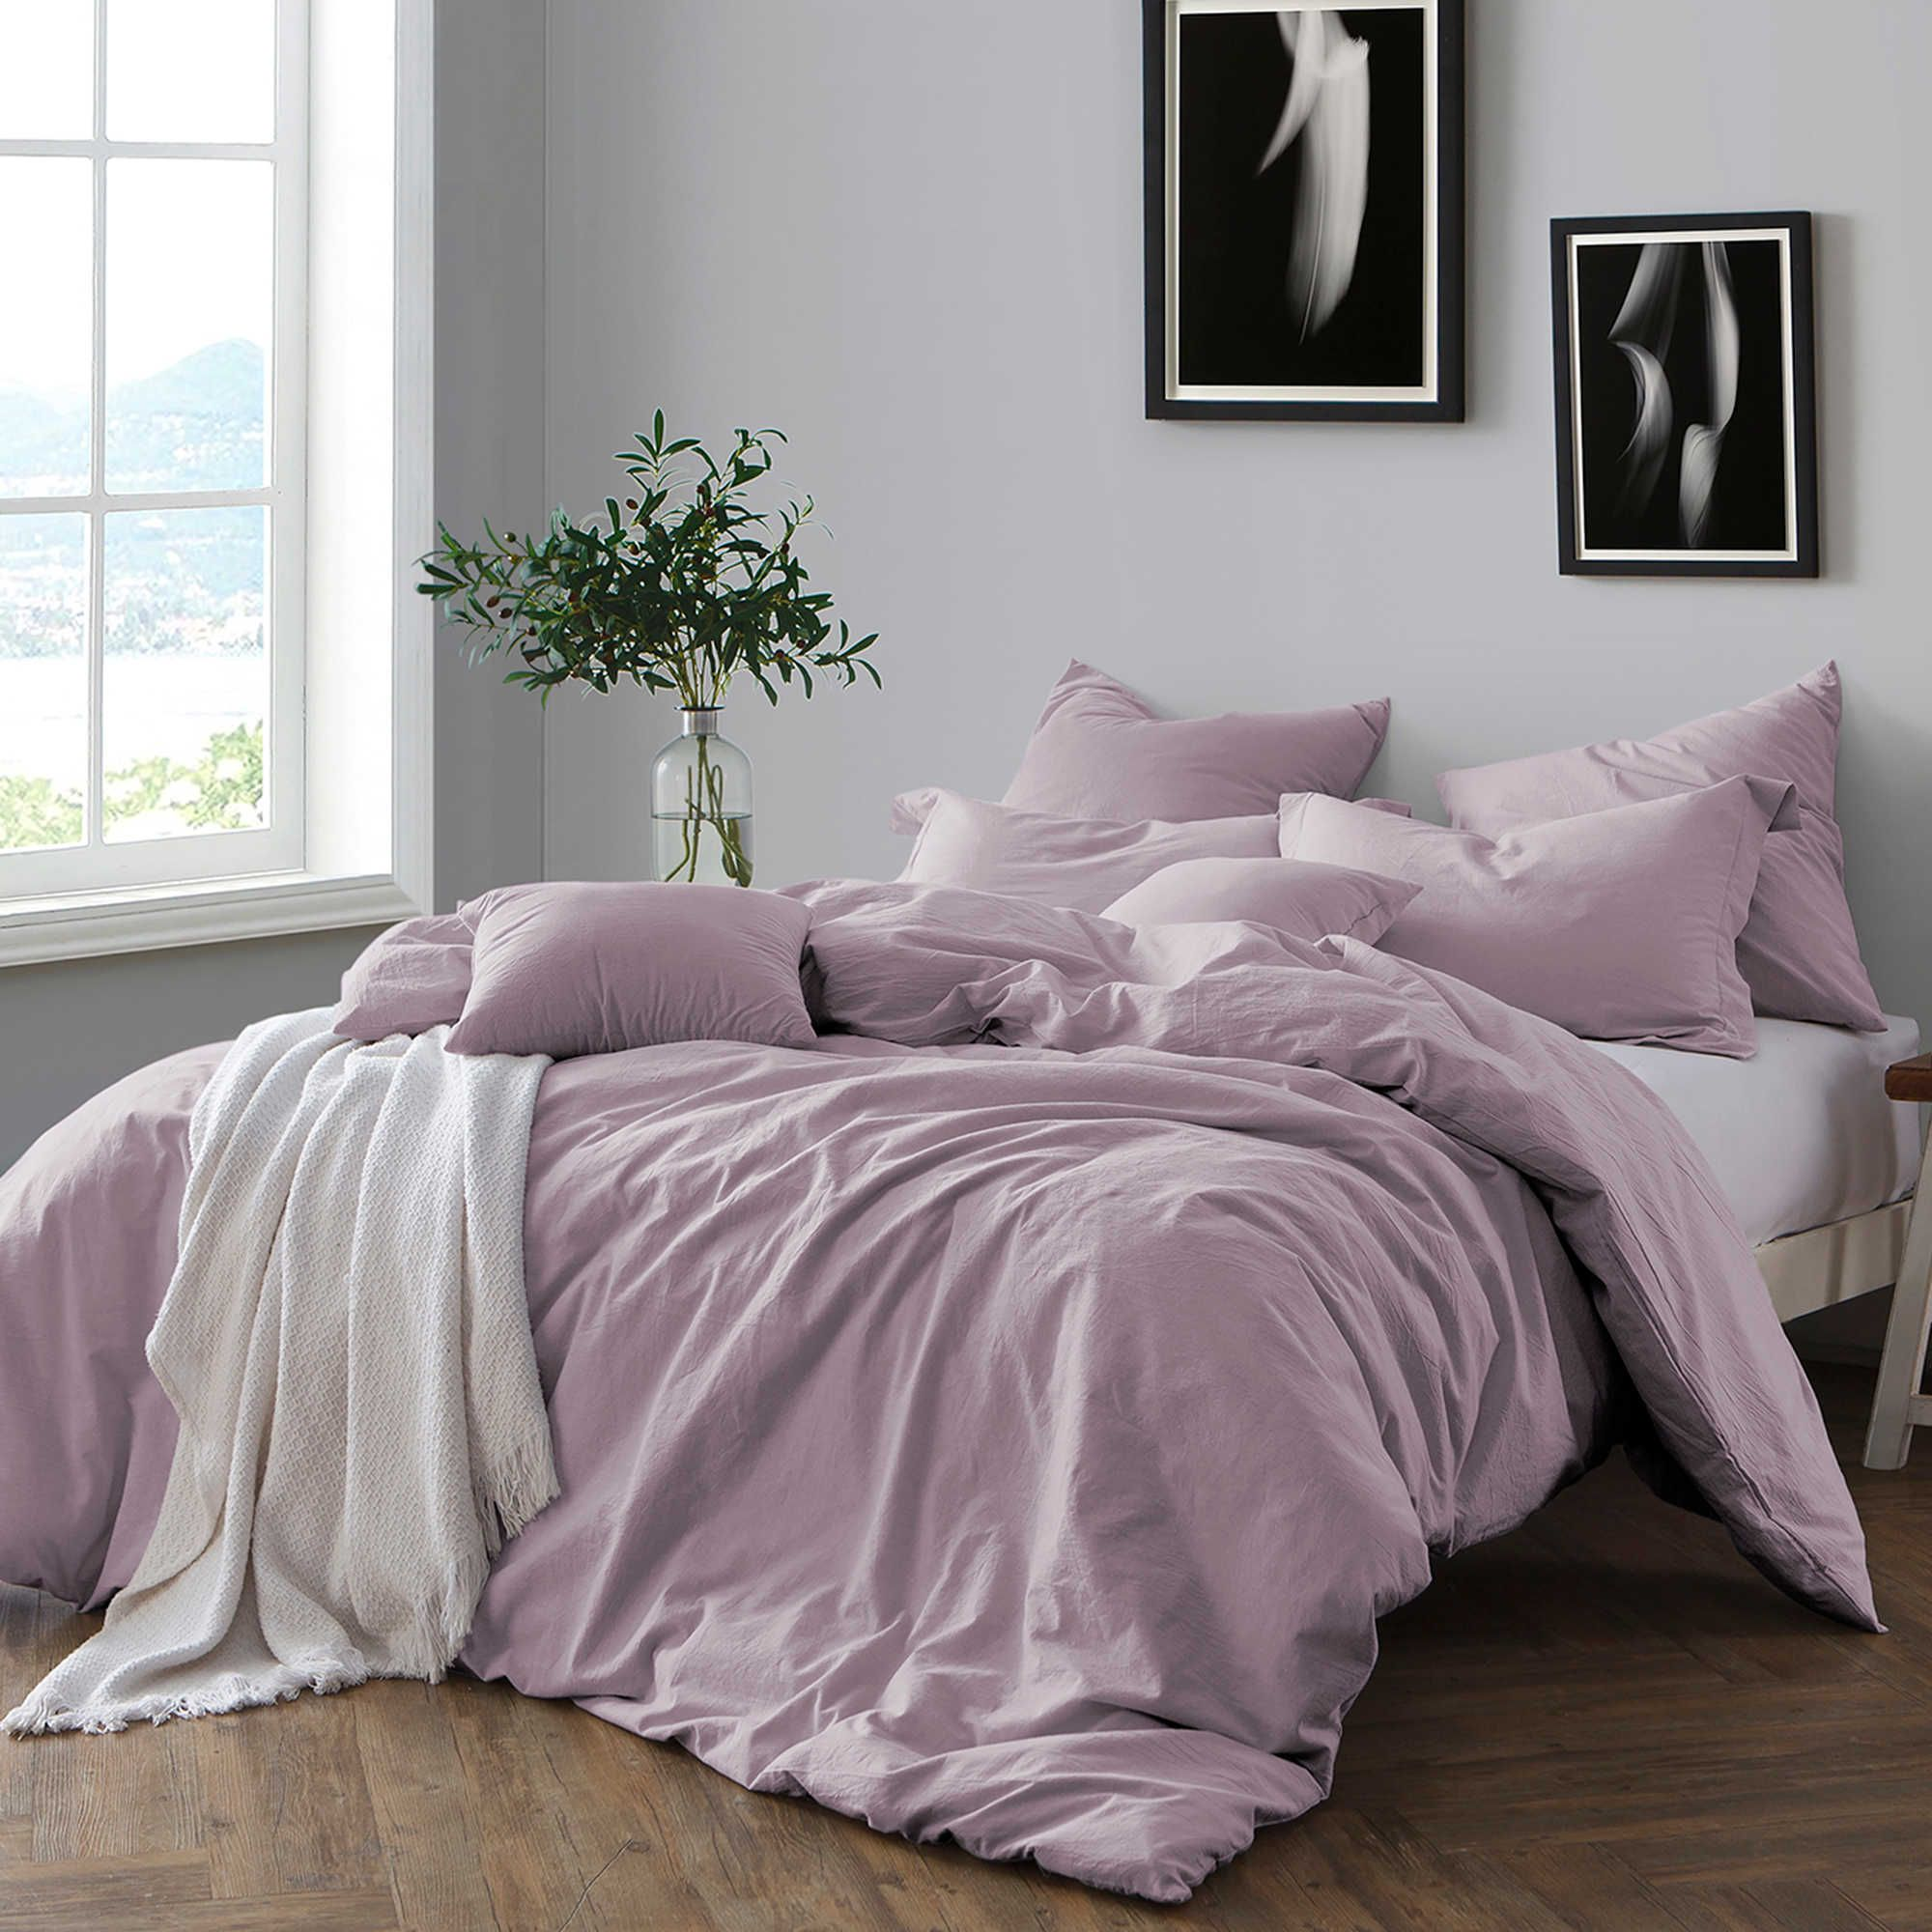 Swift home prewashed yarn dyed full queen duvet cover set in lavender